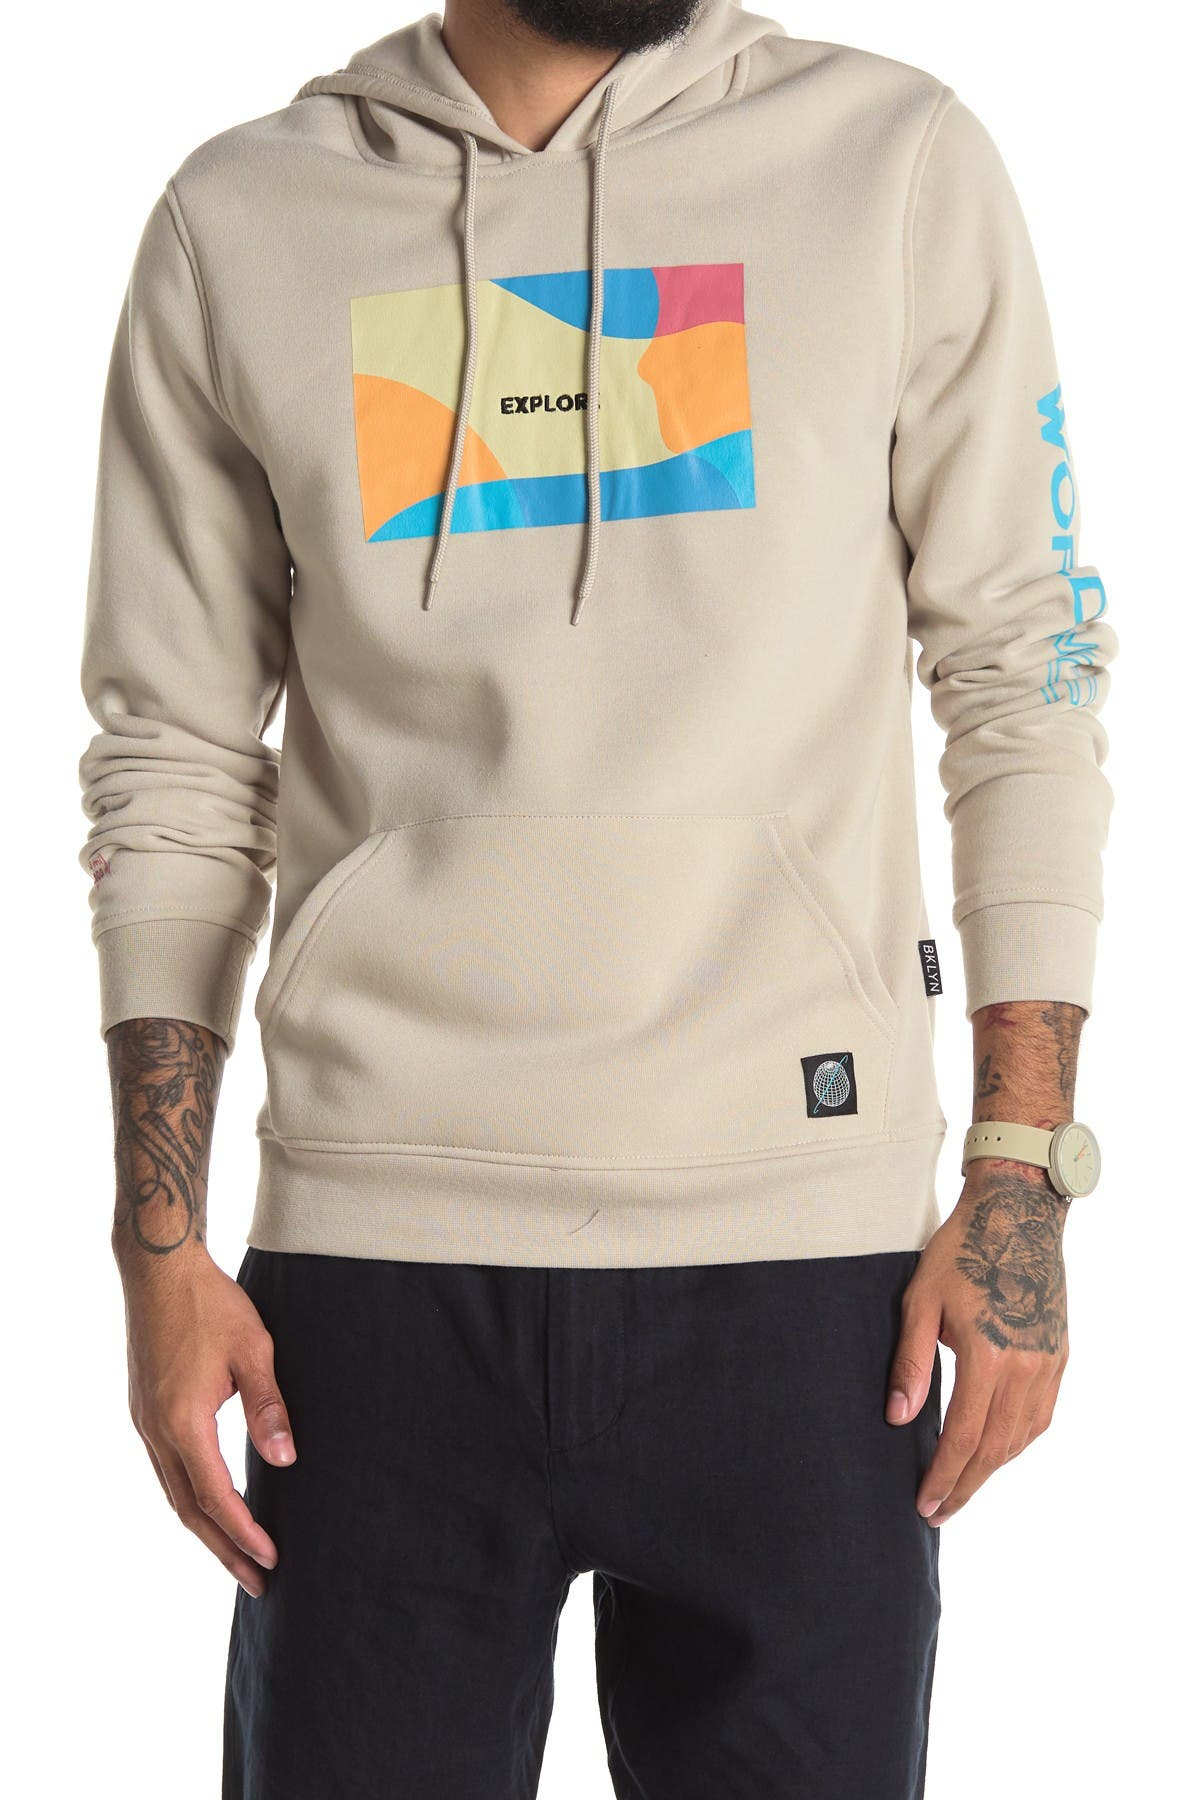 Image of The Narrows Explore 3D Embroidered Hoodie